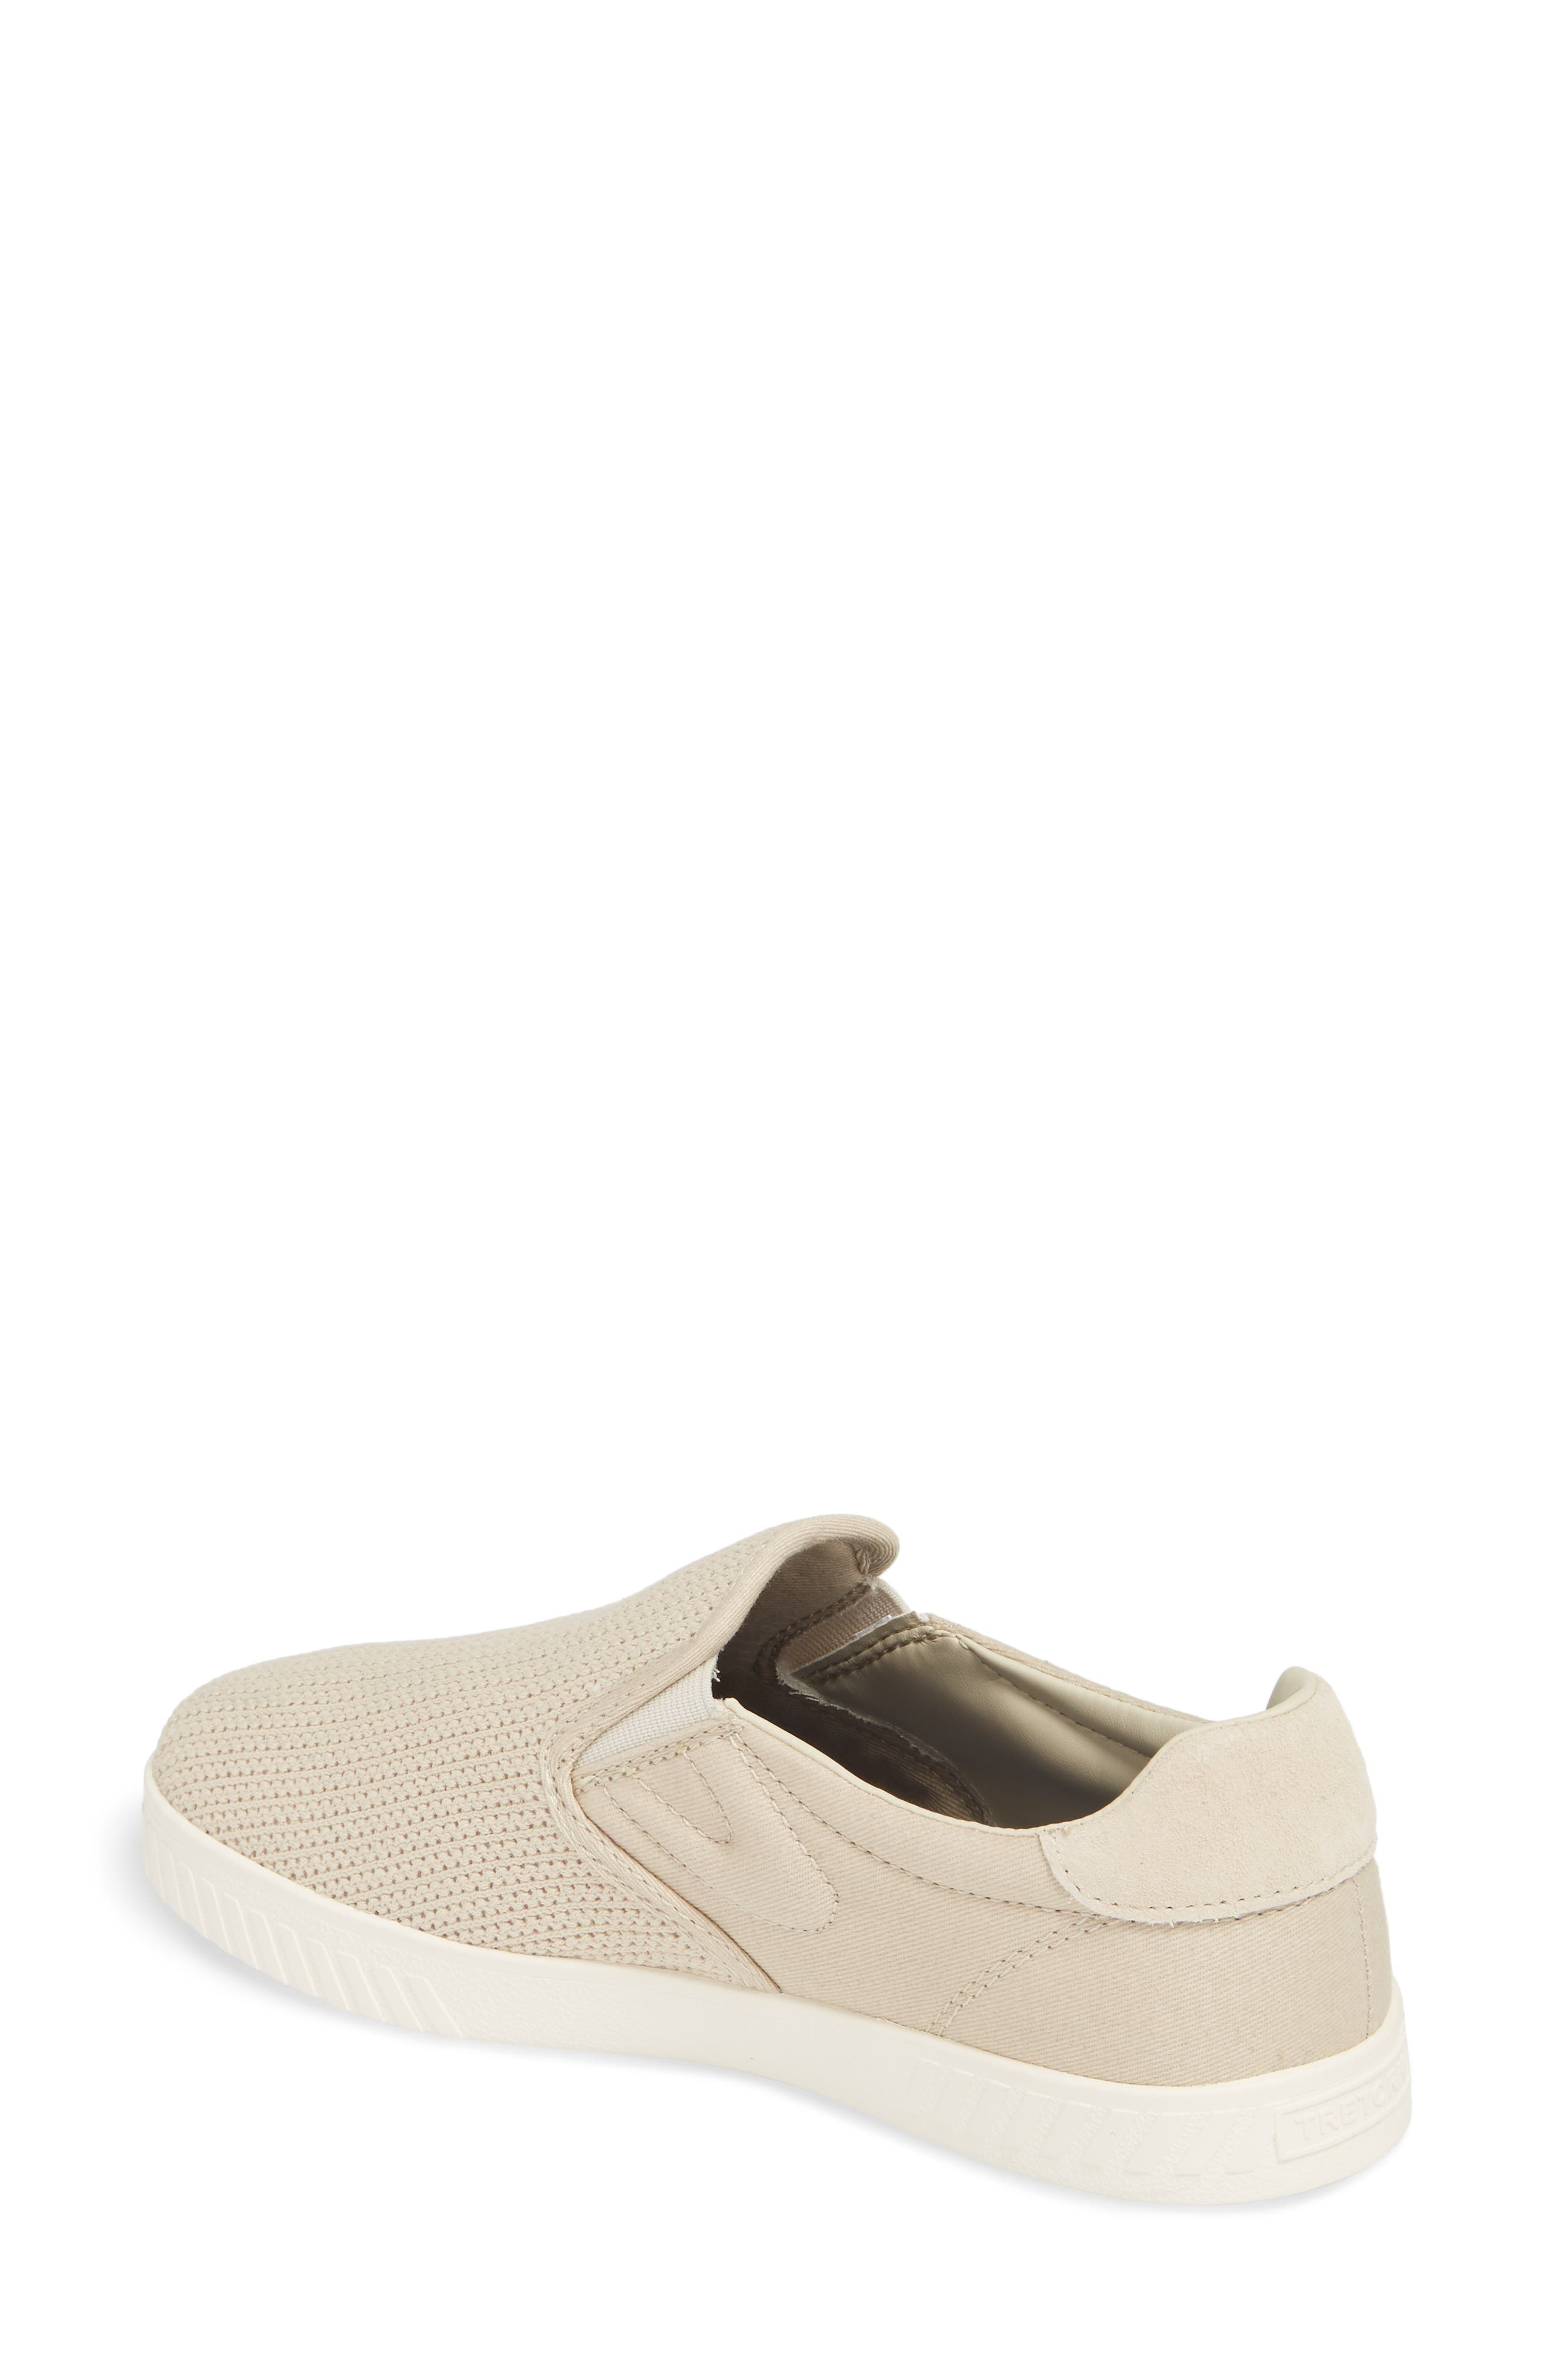 Cruz Mesh Slip-On Sneaker,                             Alternate thumbnail 6, color,